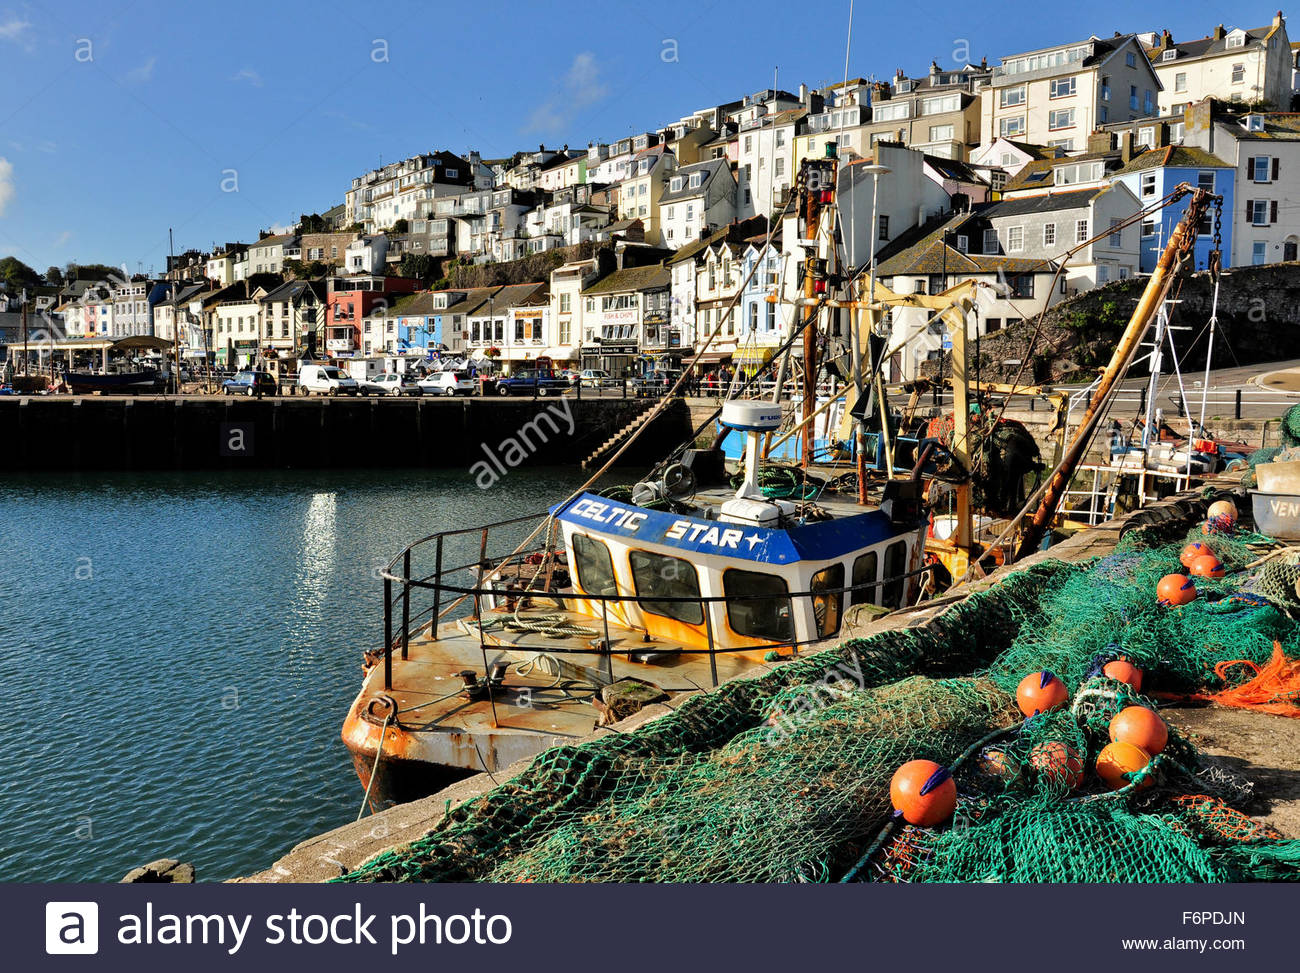 A fishing boat with fishing nets on the Quayside in Brixham Harbour, Devon - Stock Image